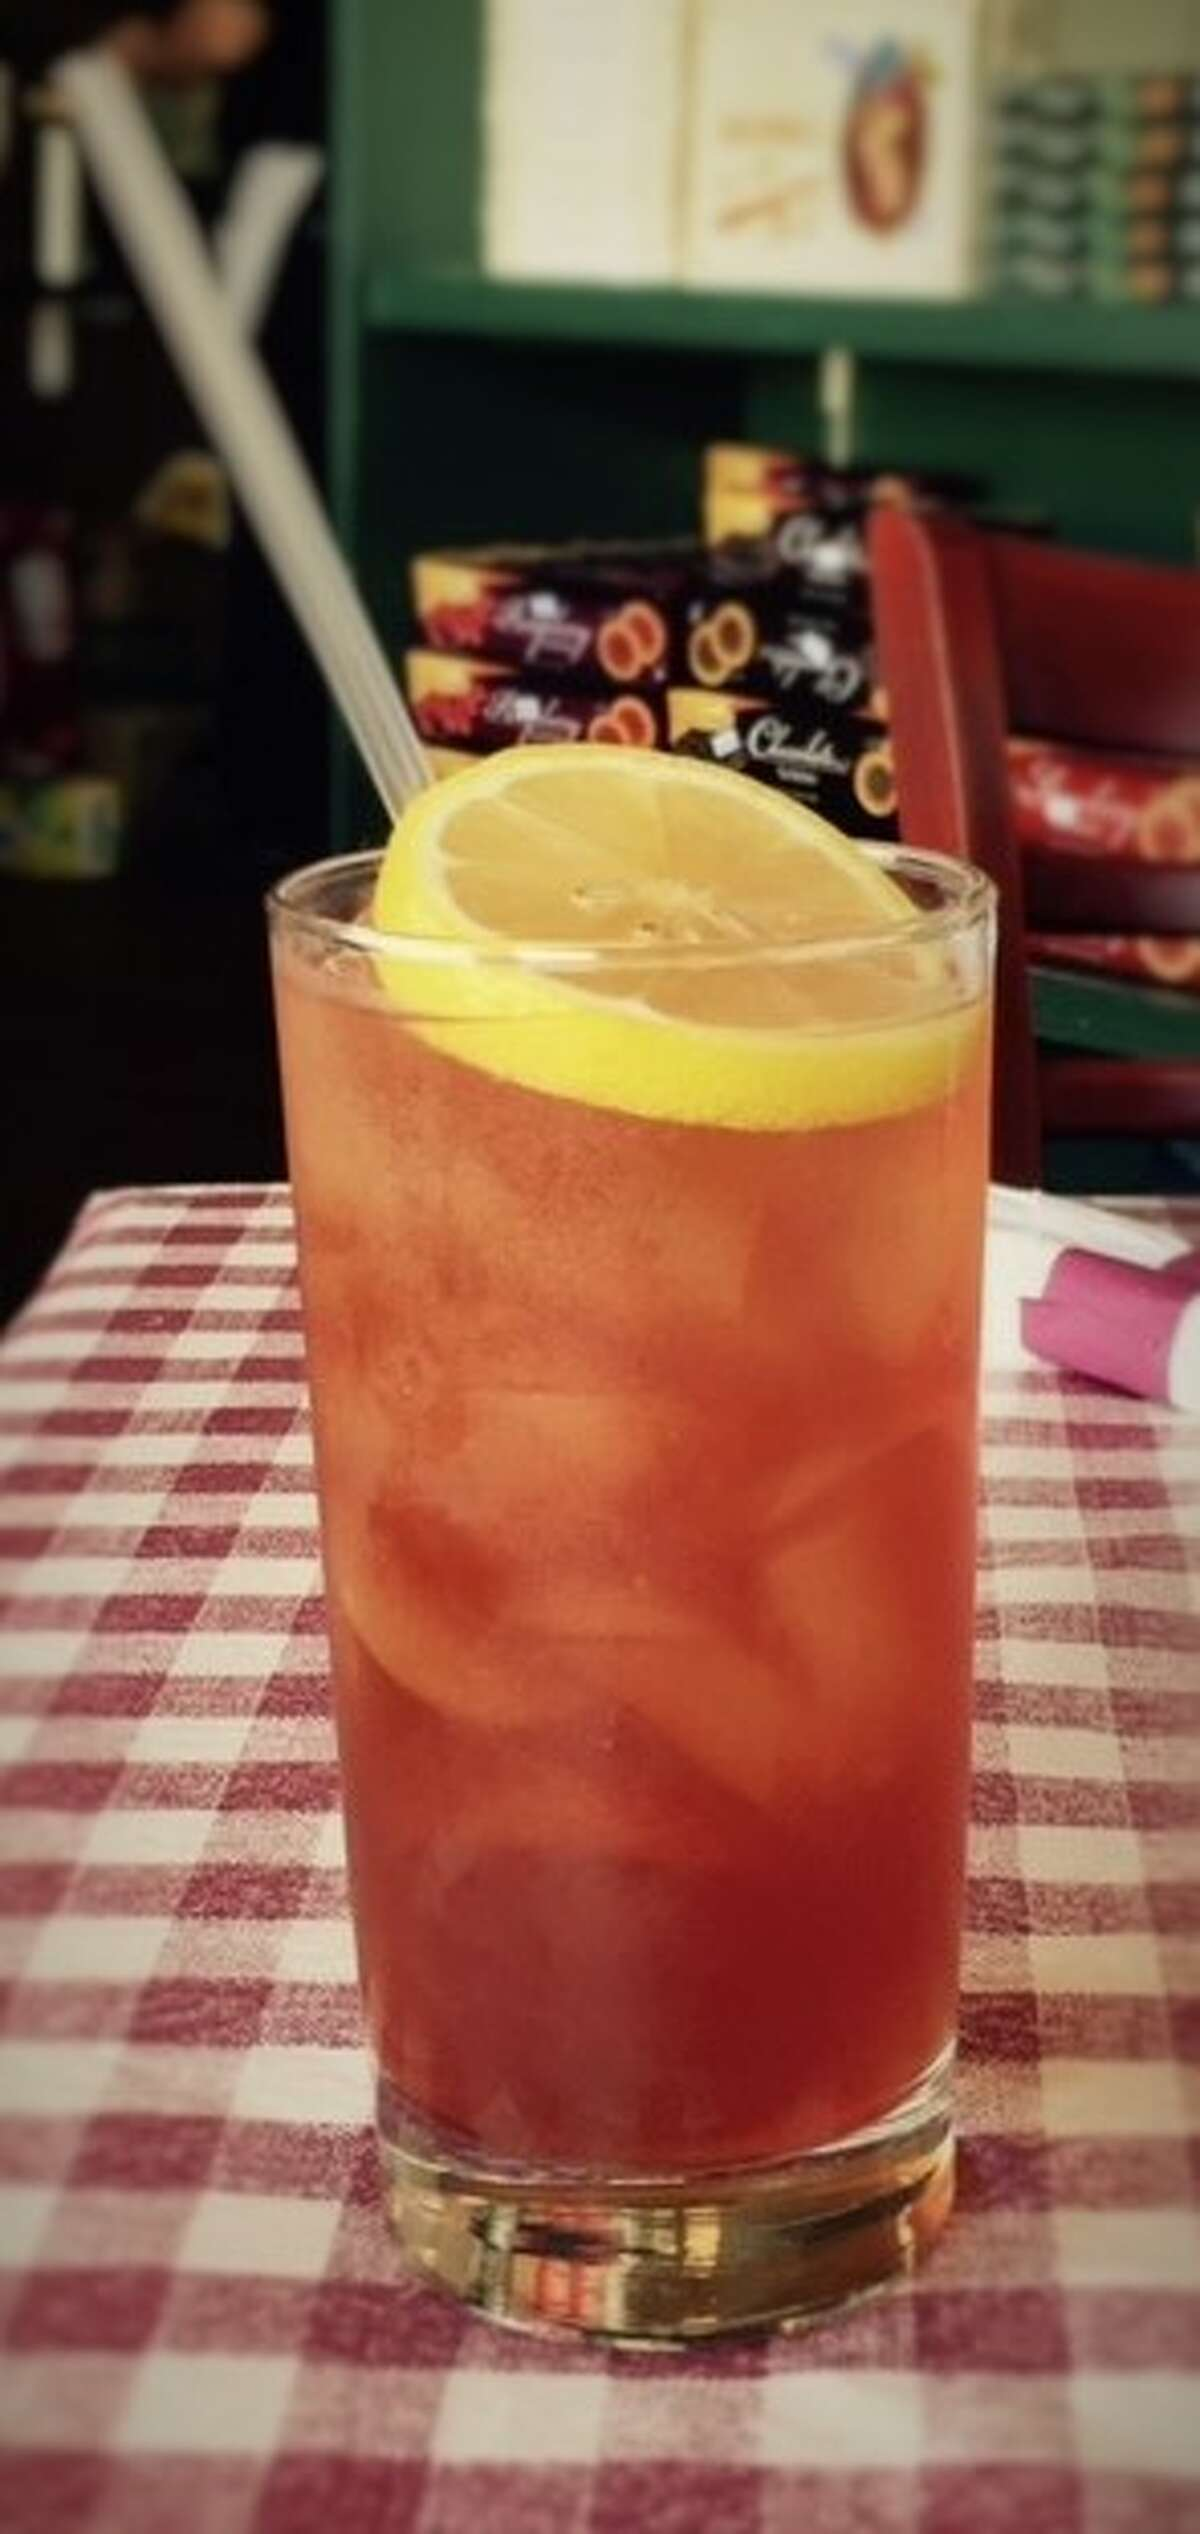 D'Amico's Punch